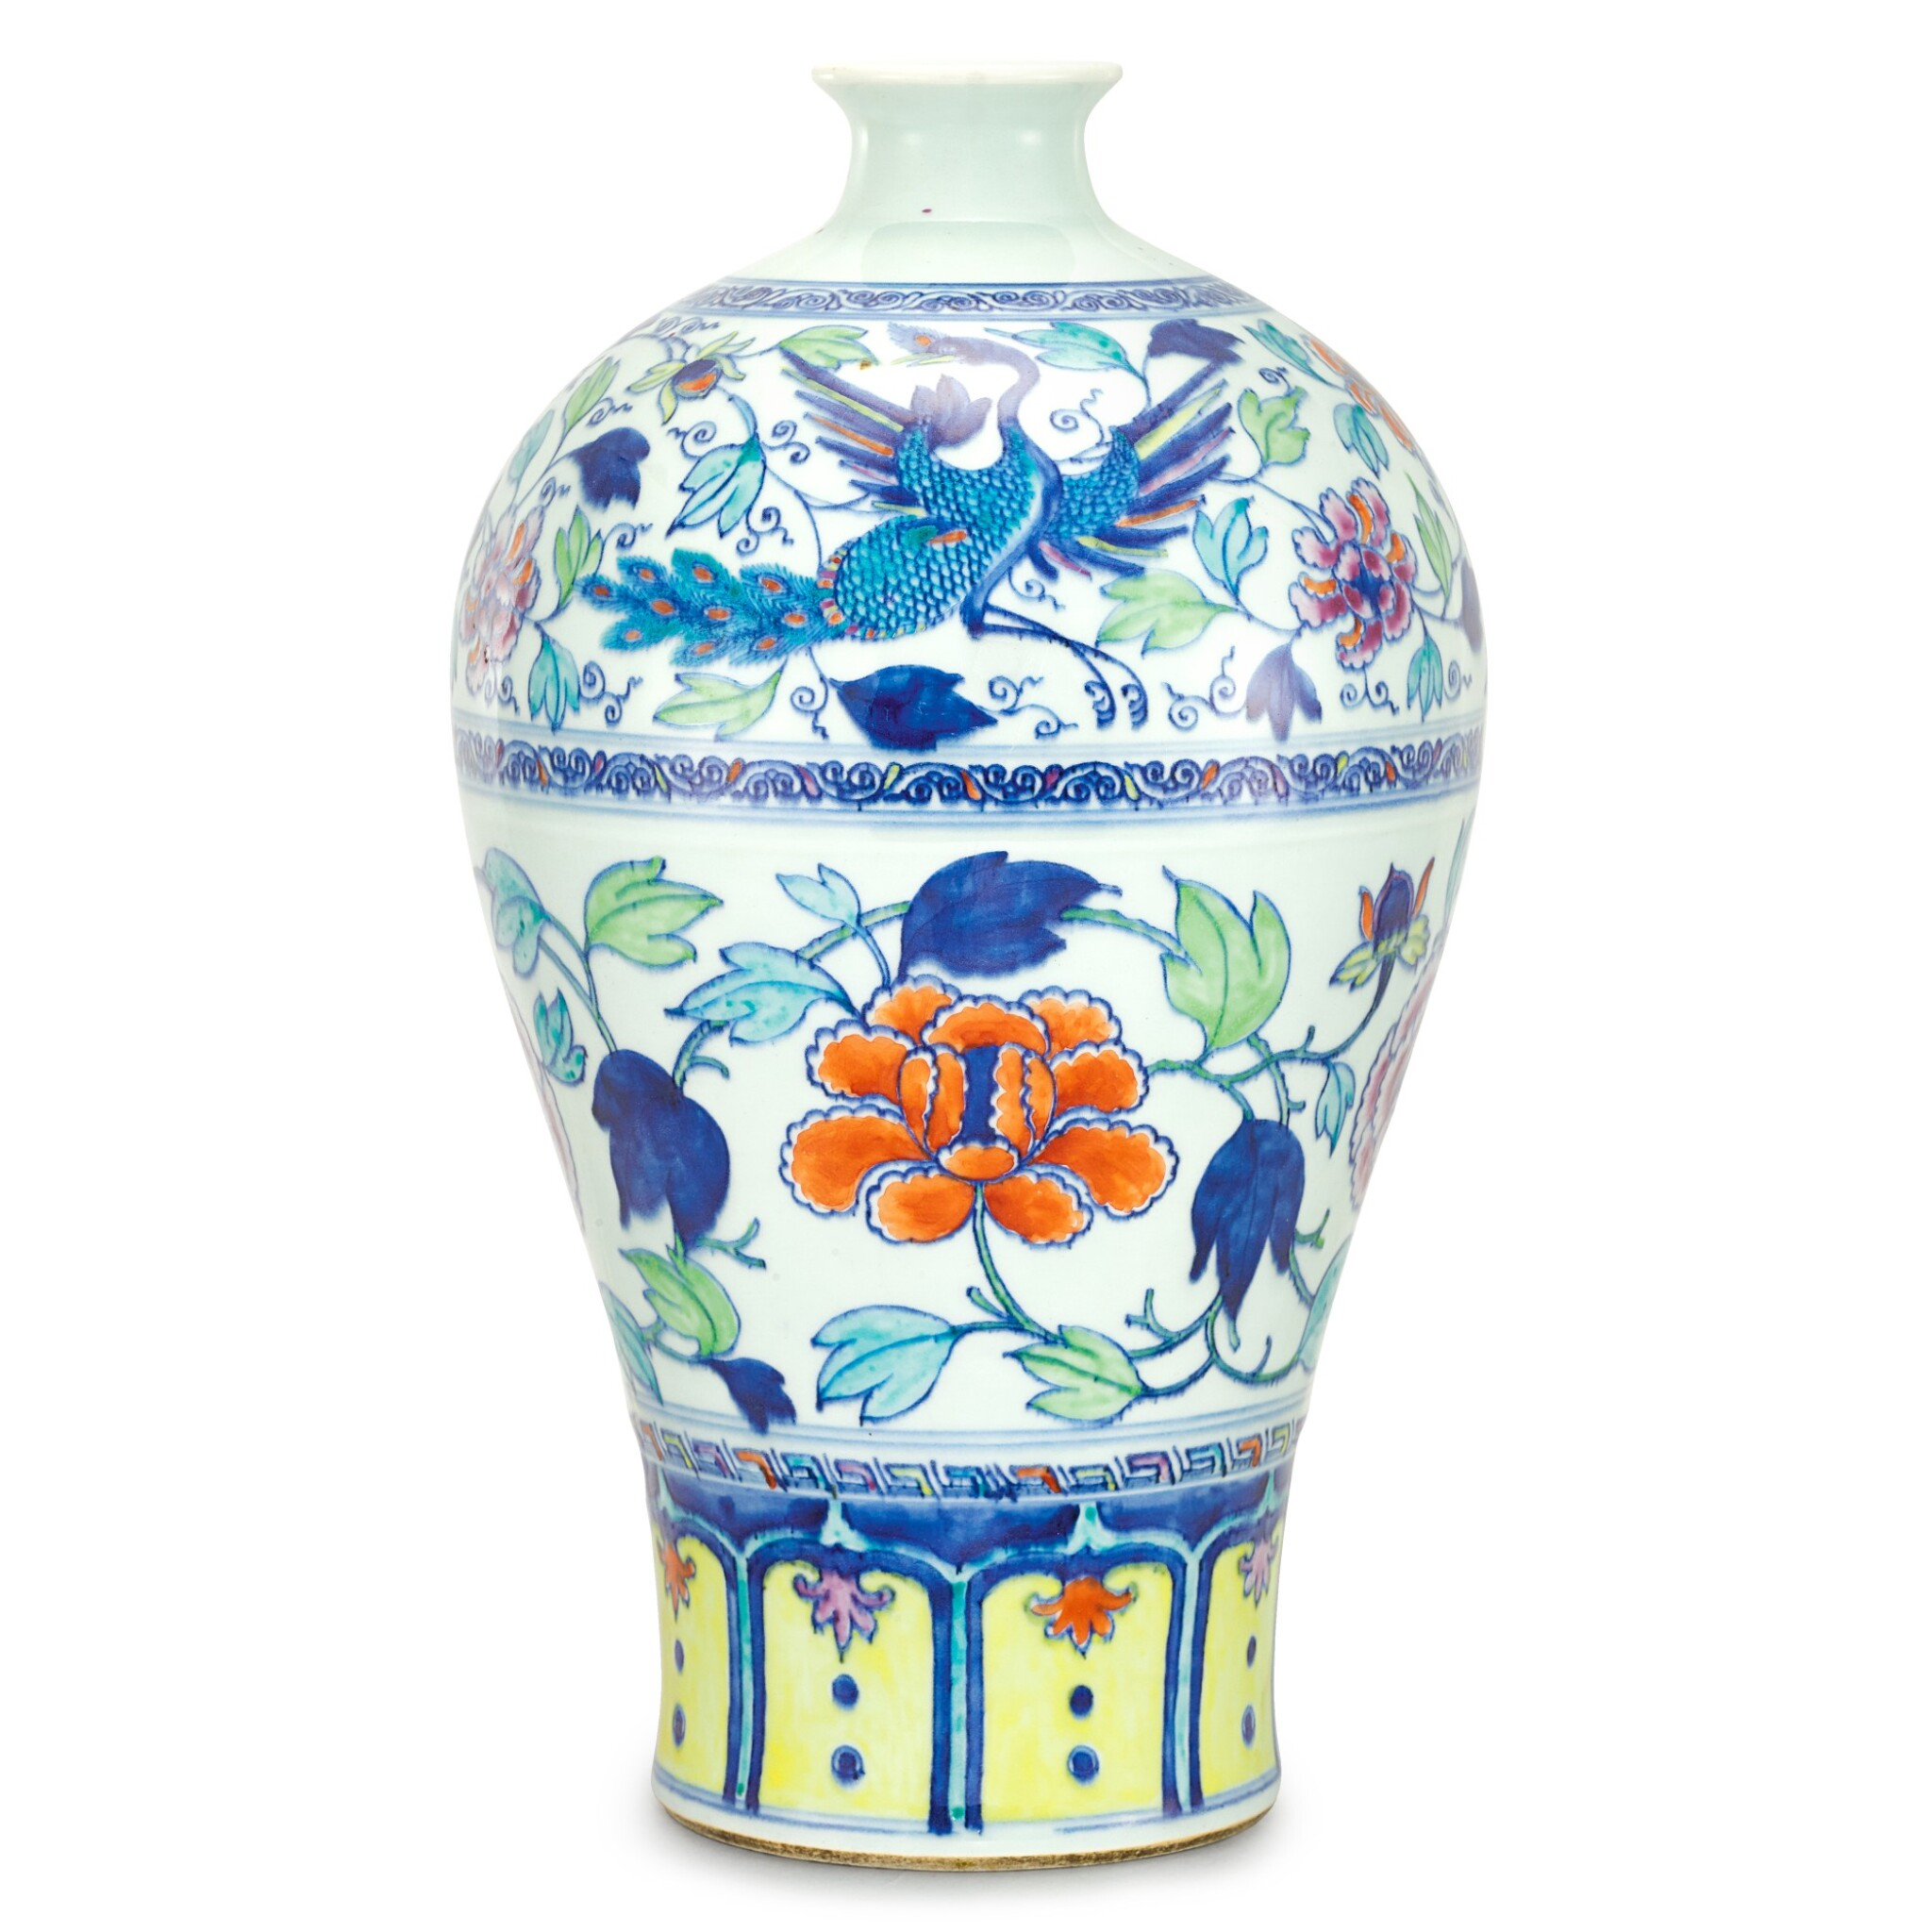 View 1 of Lot 102. A RARE YUAN-STYLE DOUCAI 'PEACOCK AND PEONY' MEIPING QING DYNASTY, YONGZHENG PERIOD | 清雍正 鬪彩瑞鳥牡丹紋梅瓶.